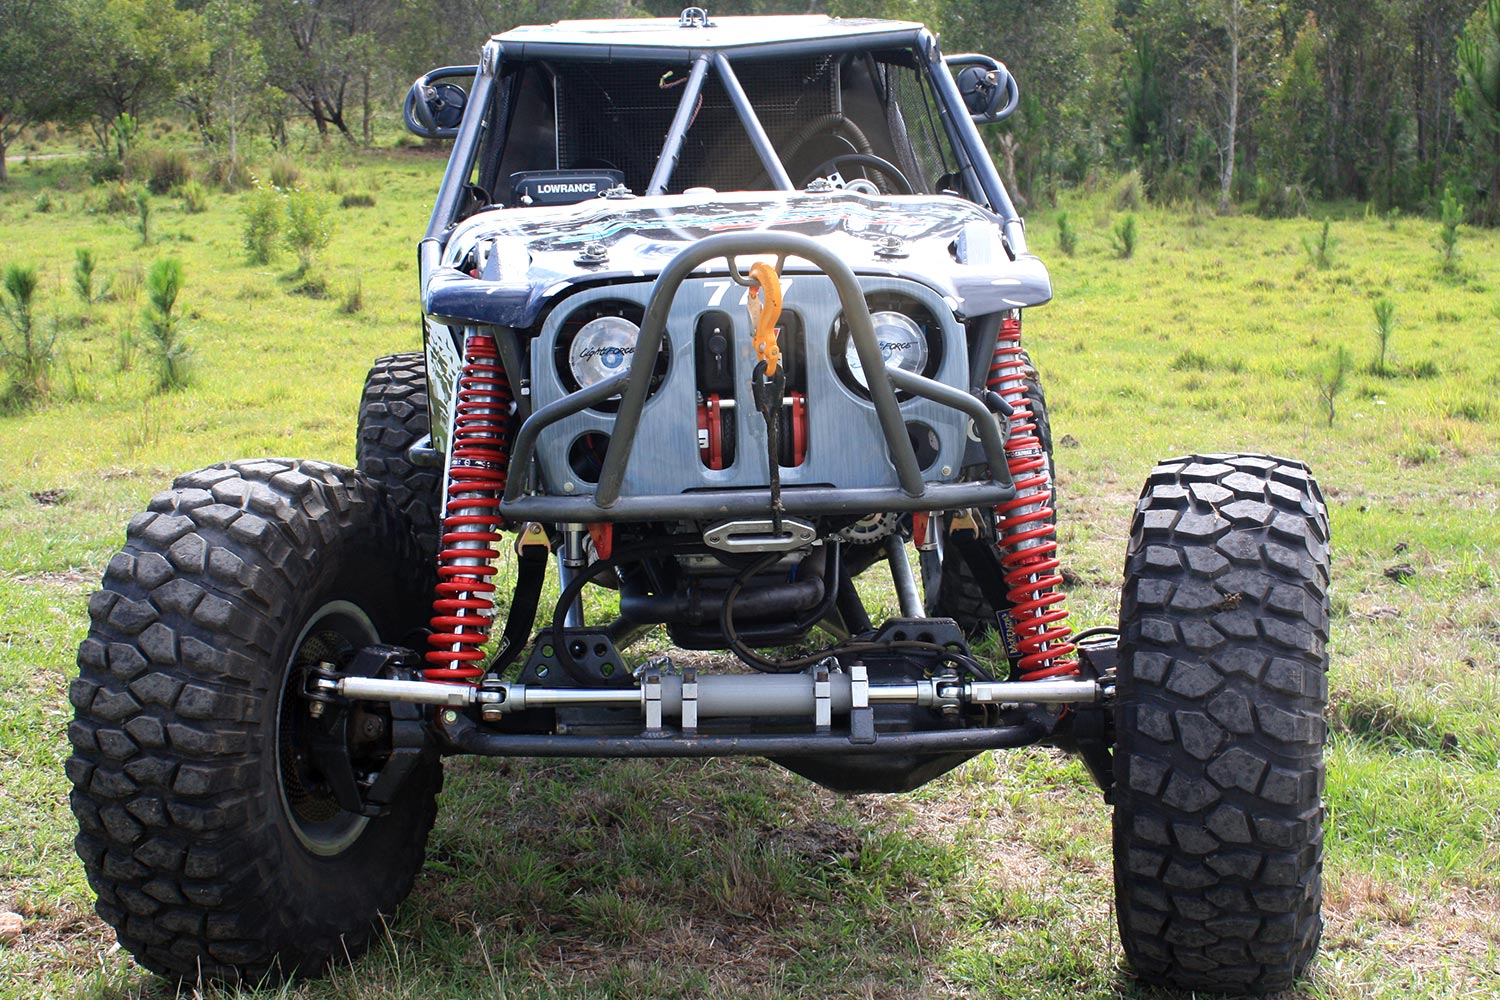 Front on view of buggy with Profender coilovers